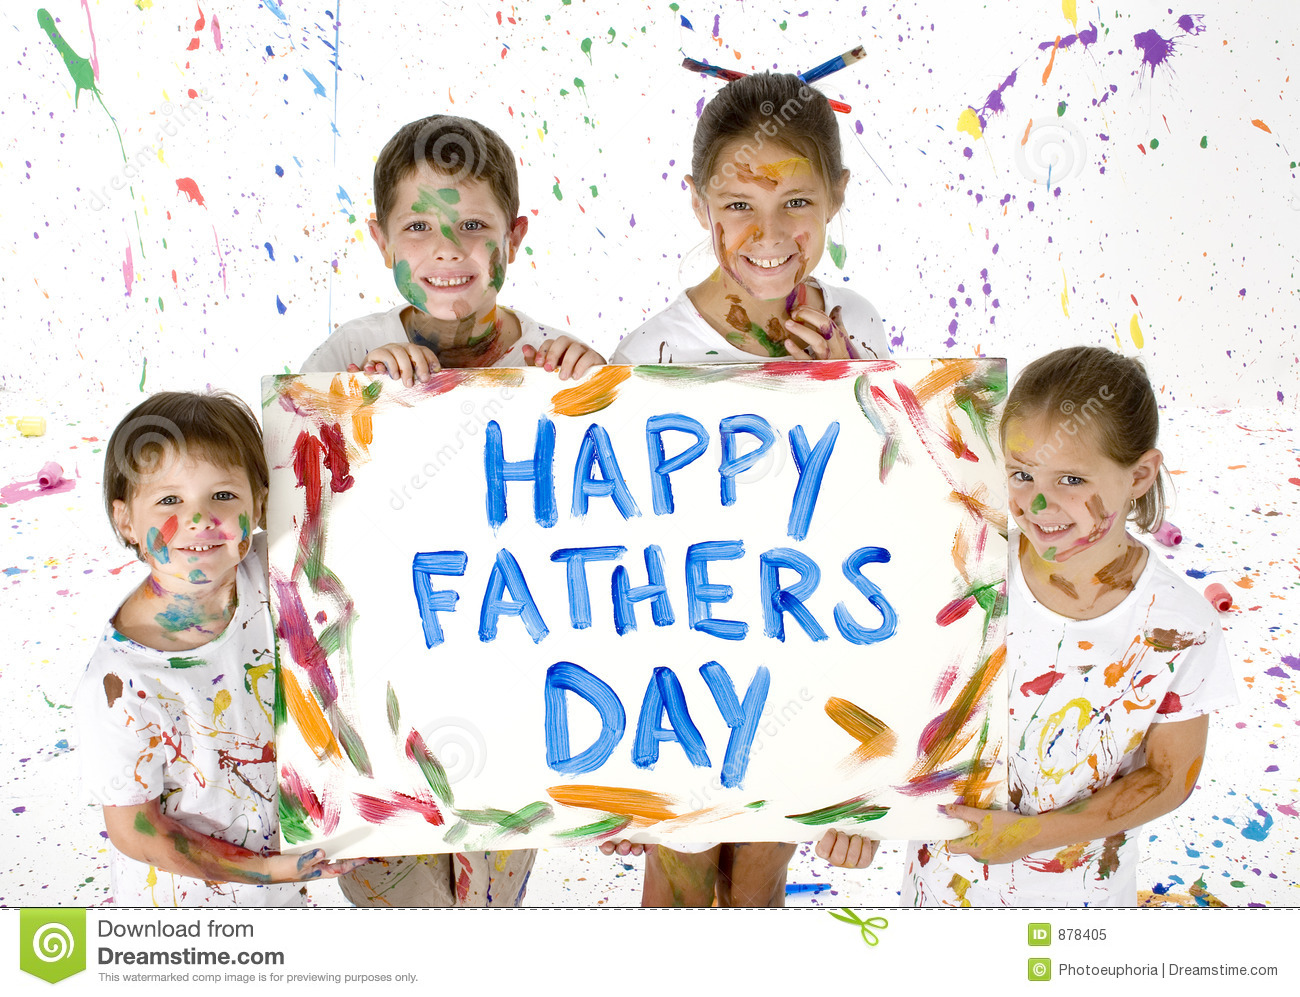 fathers day thumbs up card card for fathers day royalty free stock photo image 878405 6568